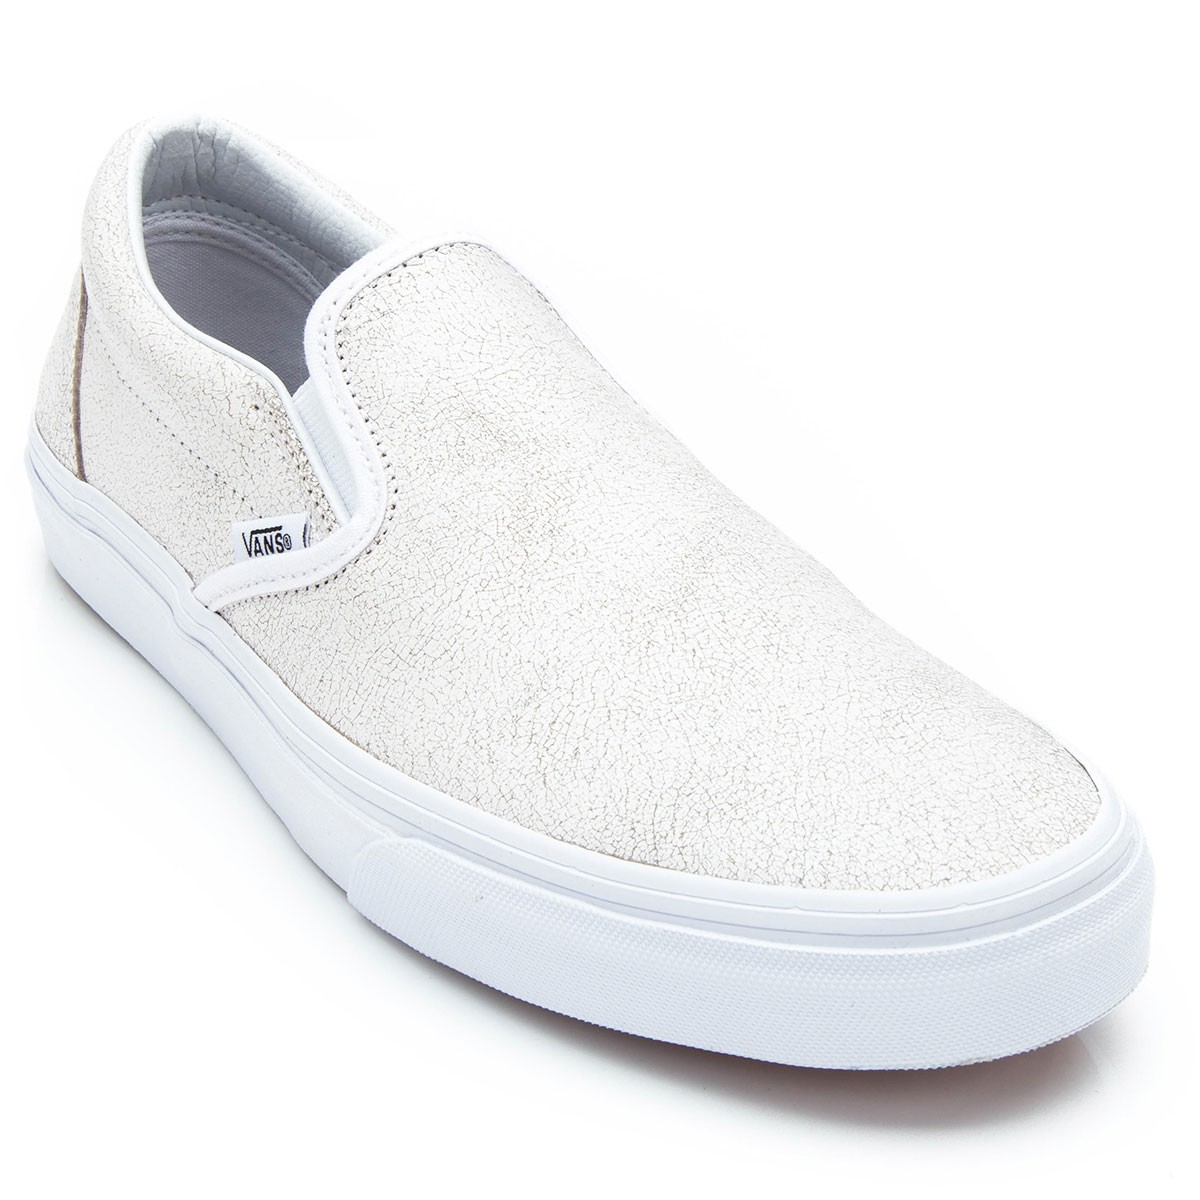 Vans Classic Slip-On Cracked Leather Shoes